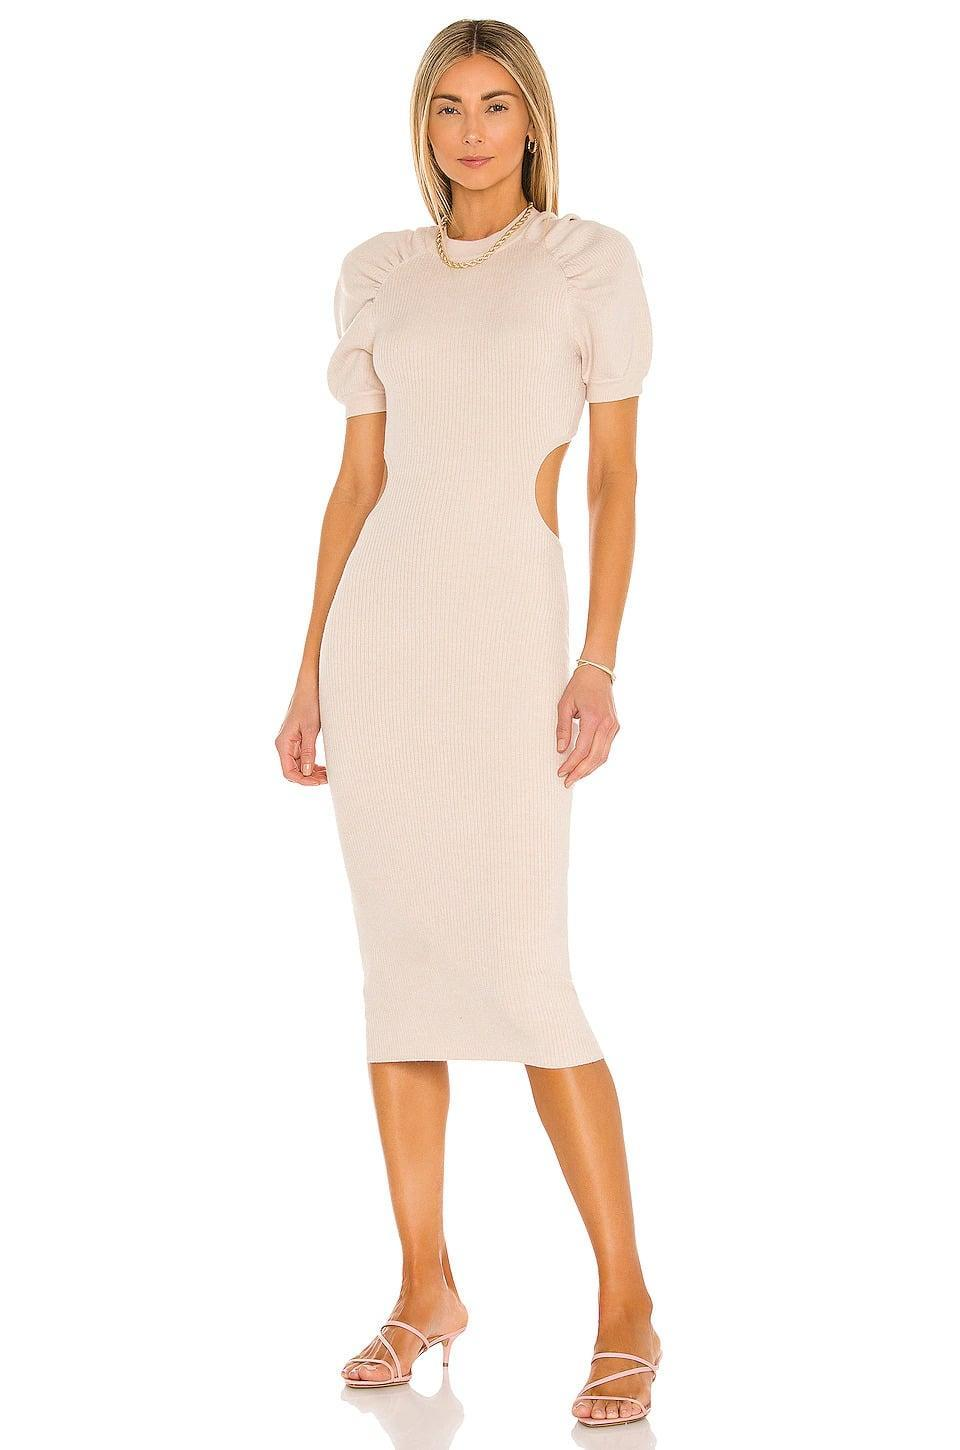 <p>We're loving the puff sleeves and side cut-outs of this <span>LPA Clementine Dress in Neutral</span> ($96, originally $198). Pair it with your favorite heels and take the city by storm. </p>